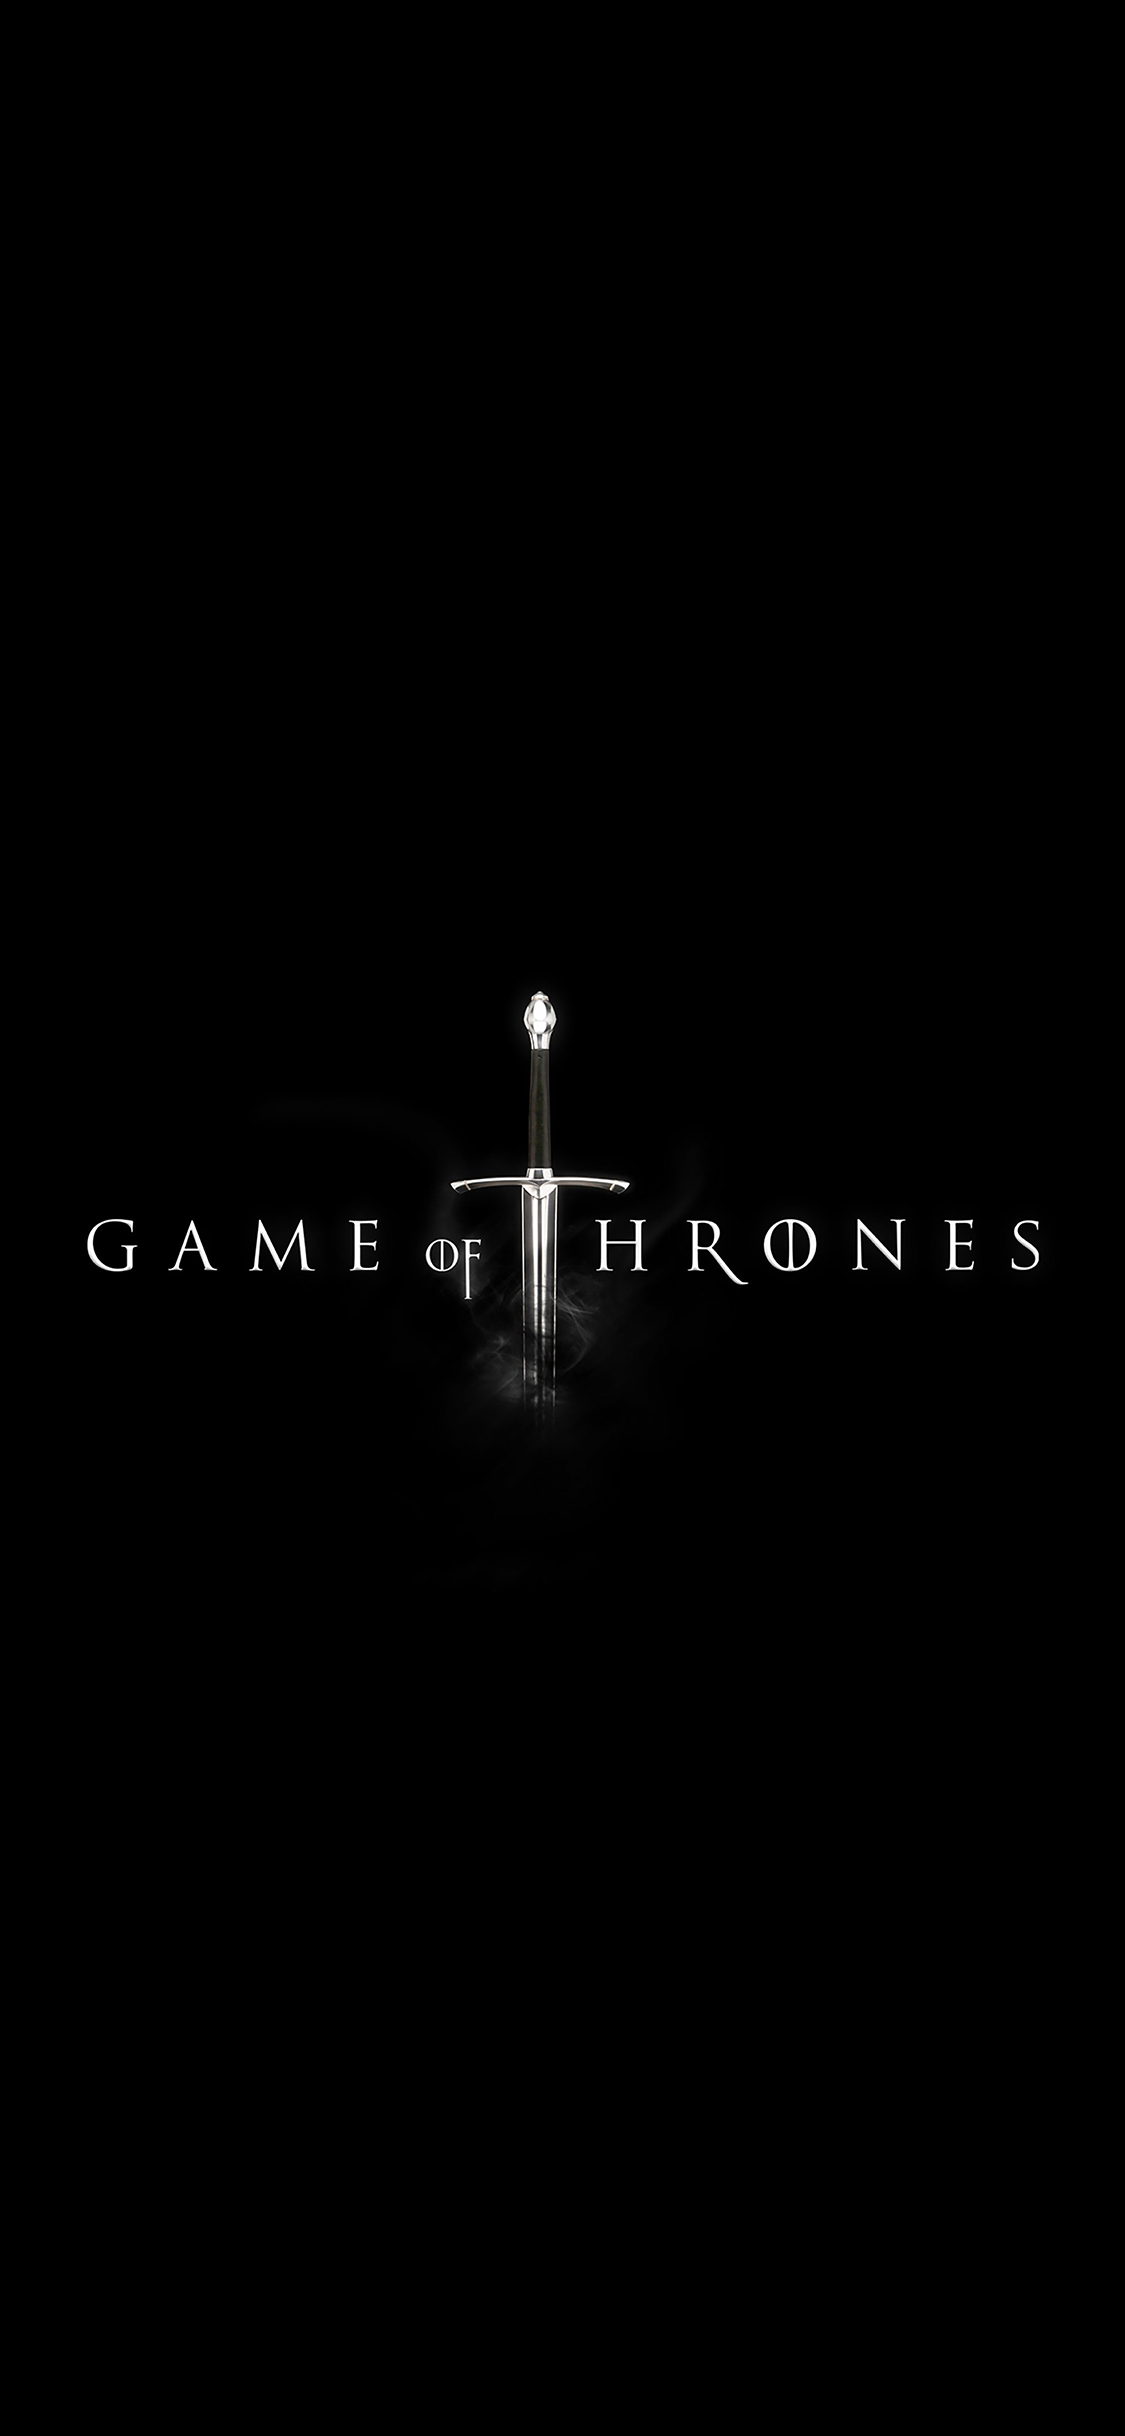 Evo 8 Hd Wallpaper Ab81 Wallpaper Game Of Thrones Dark Papers Co